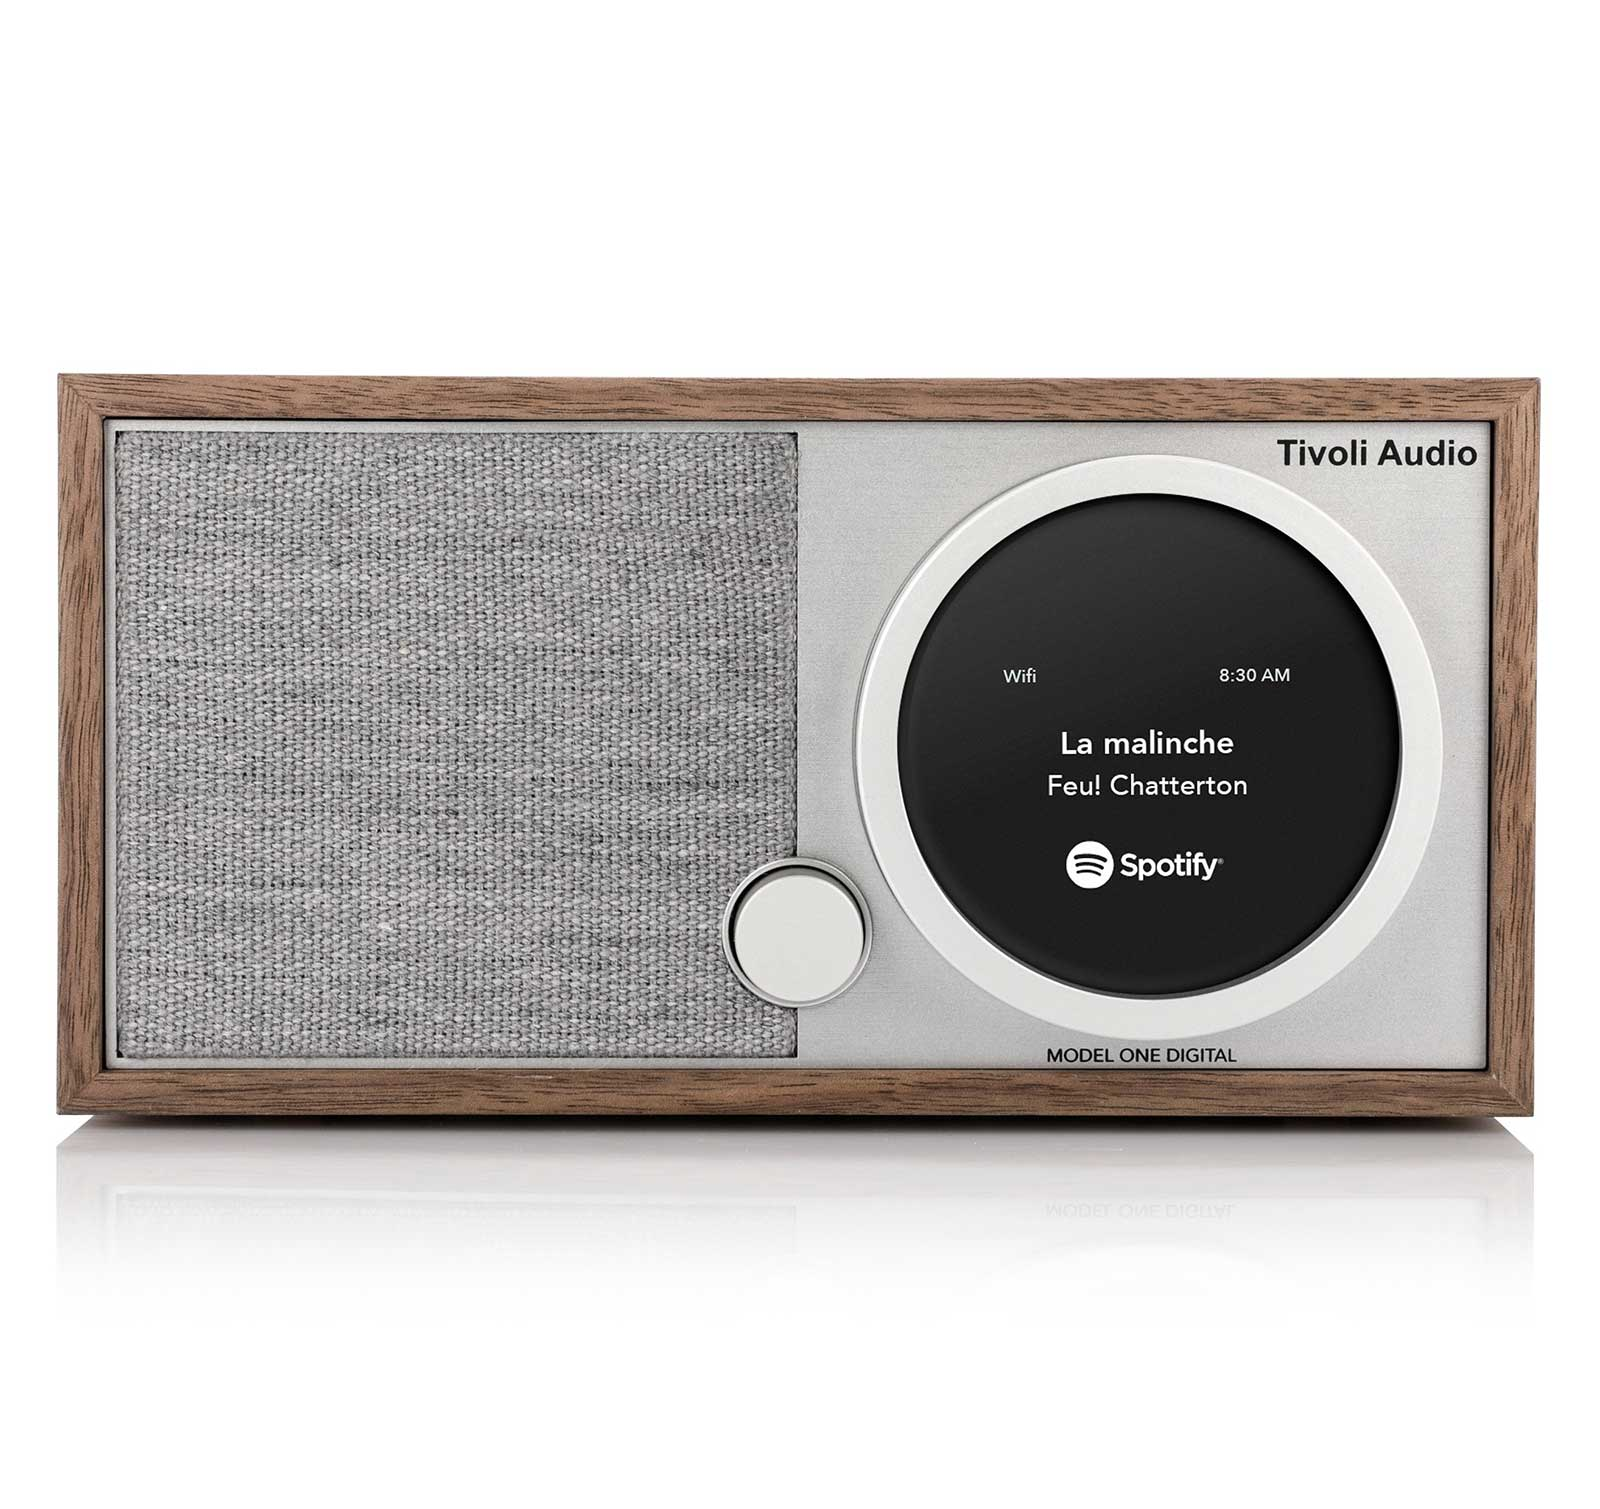 Tivoli Audio Model One Digital Walnut Gray Wi-Fi Bluetooth Table radio by Tivoli